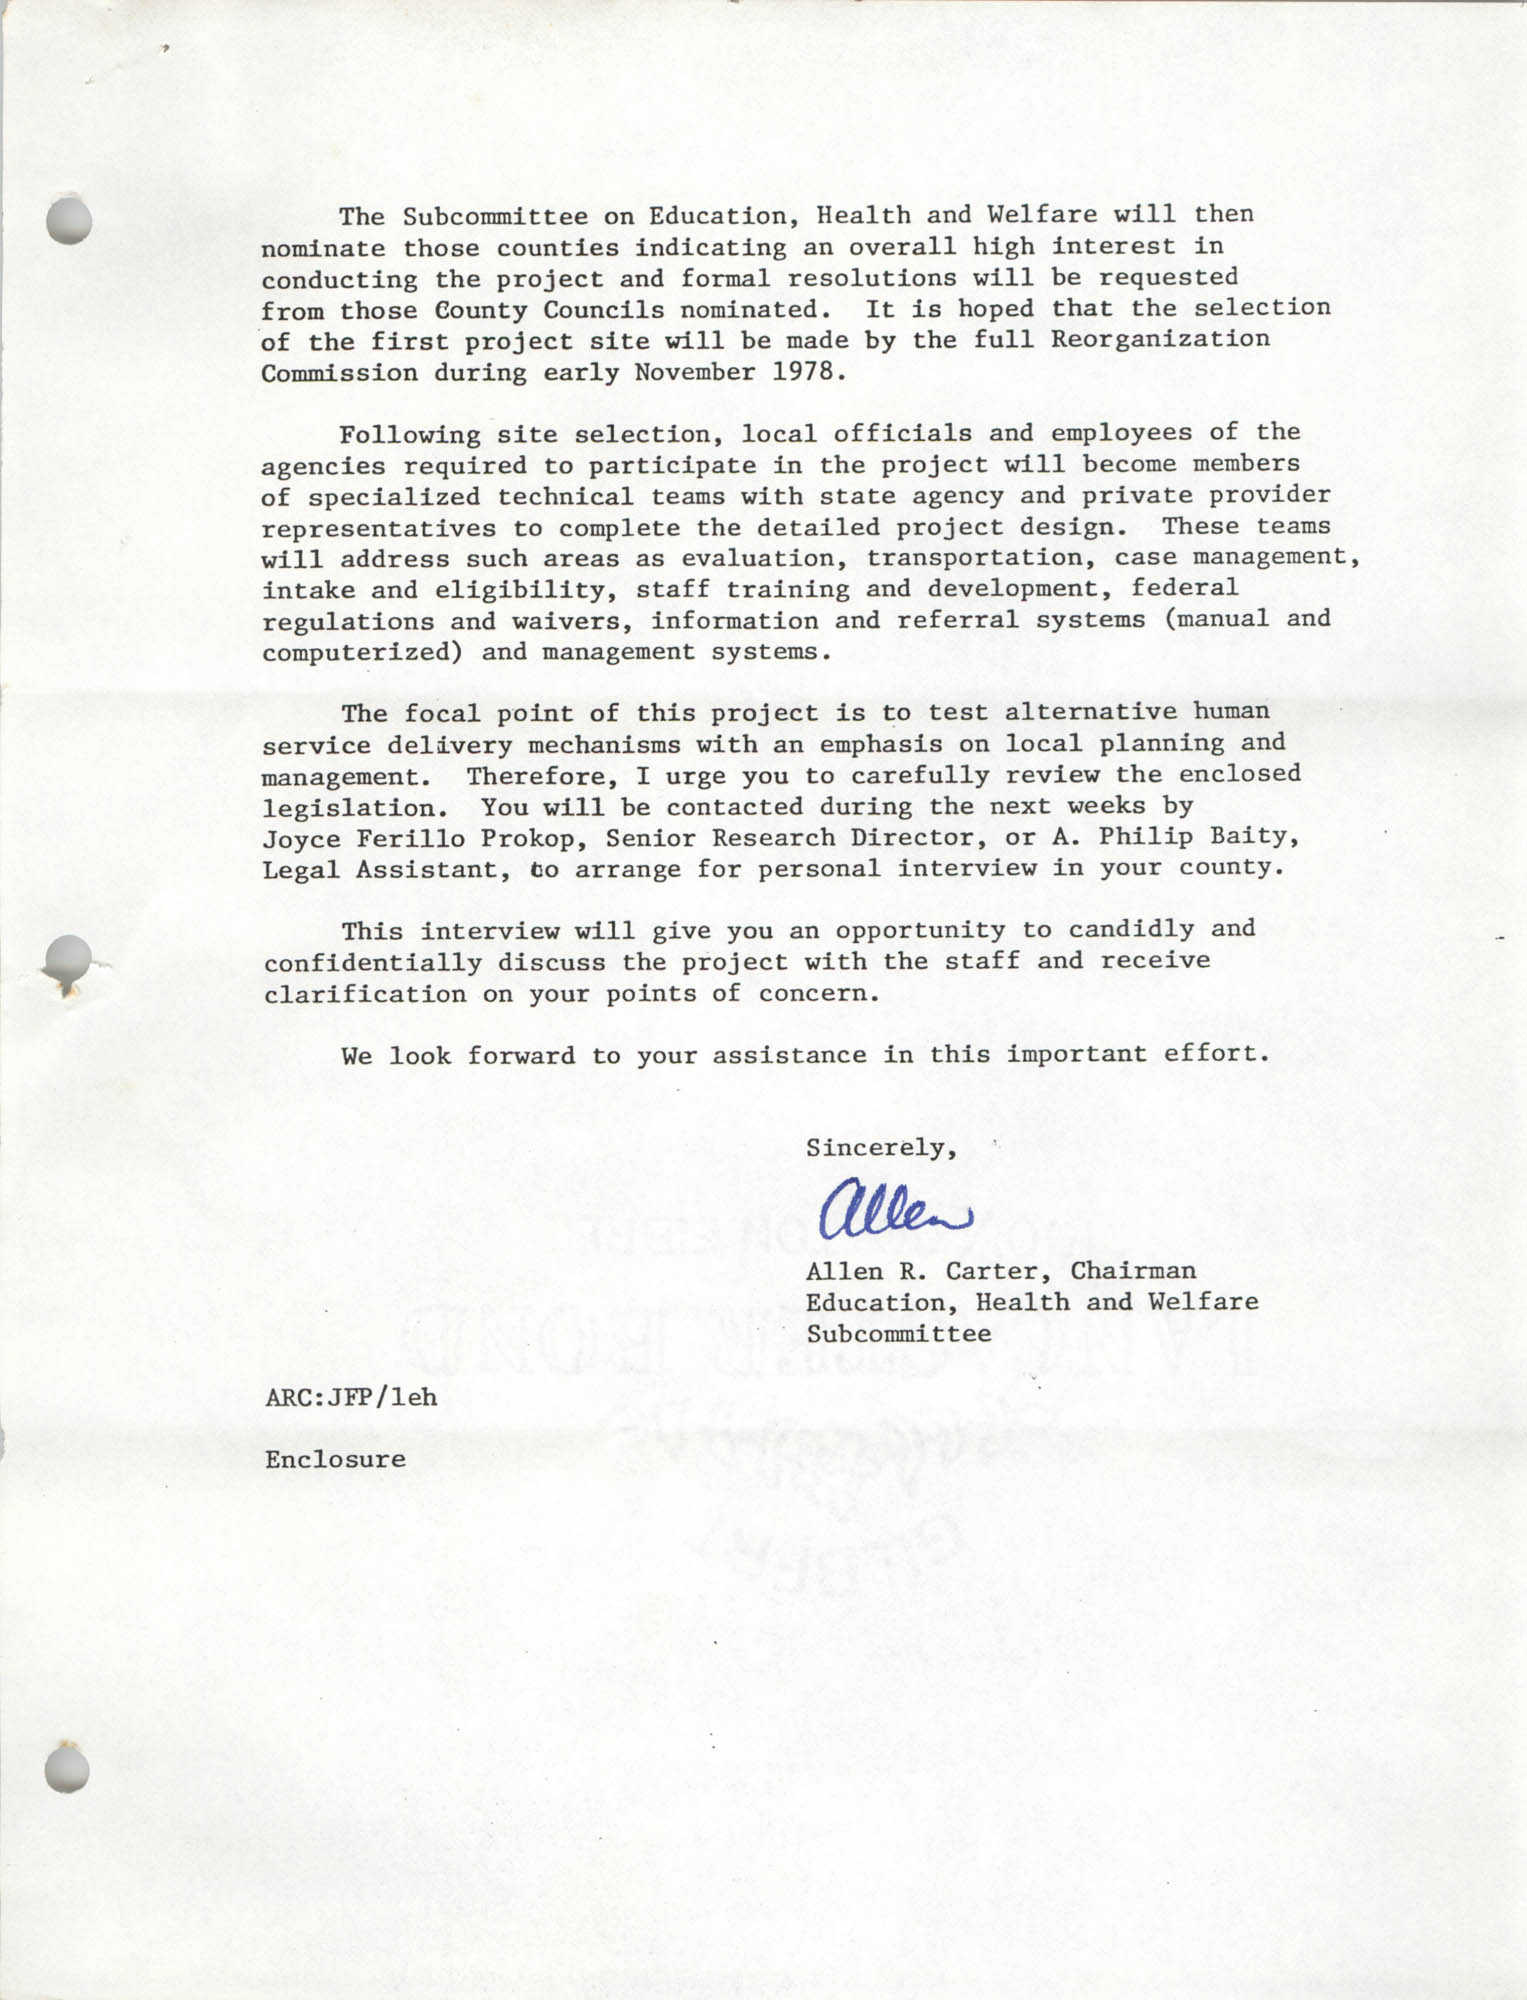 Letter from Allen R. Carter to William Saunders, September 7, 1978, Page 2